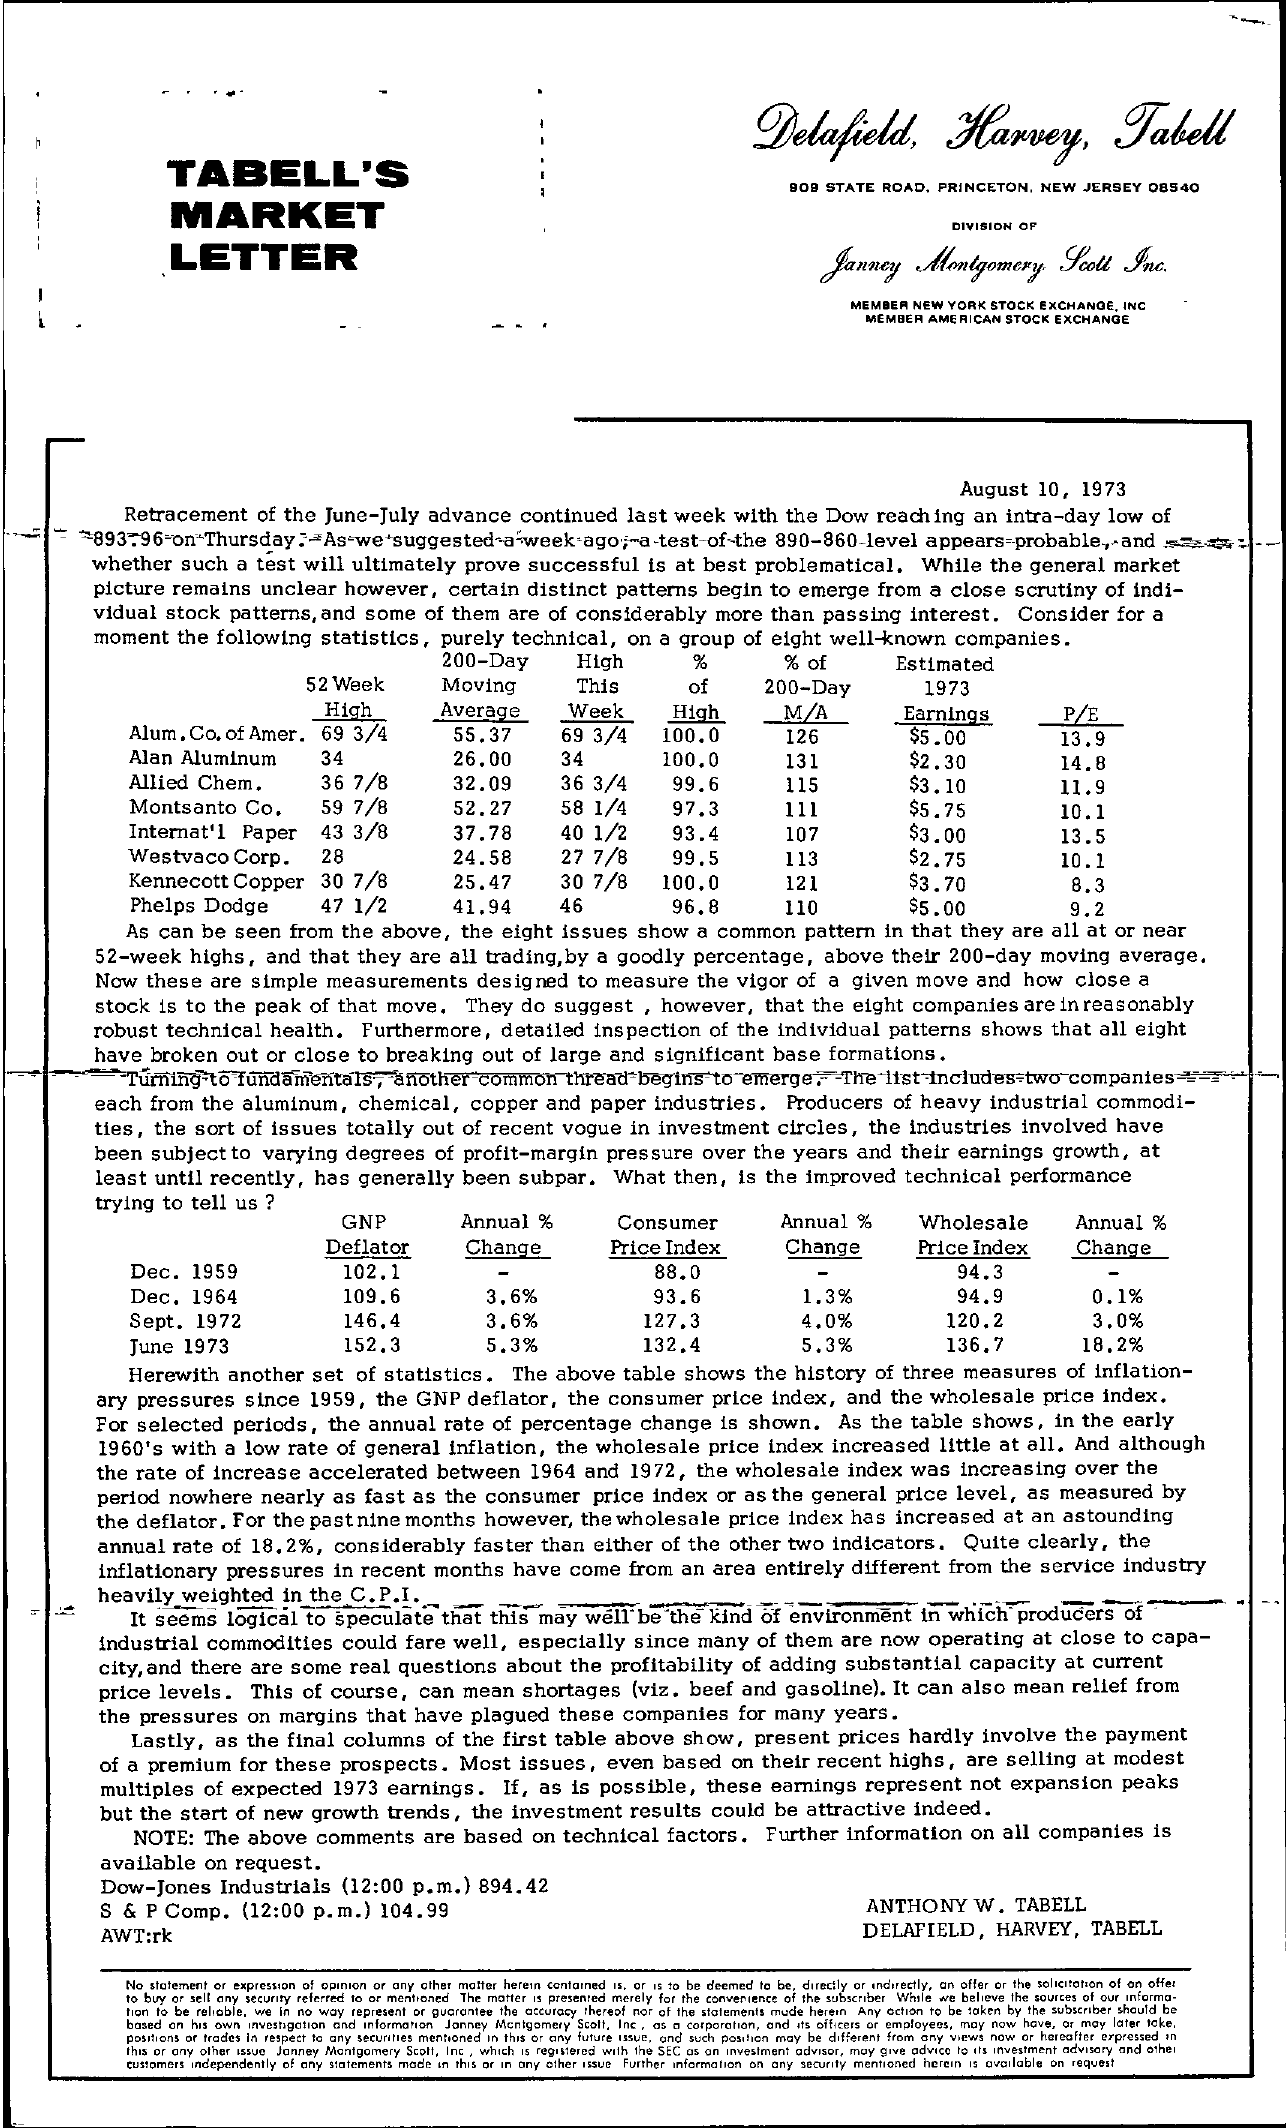 Tabell's Market Letter - August 10, 1973